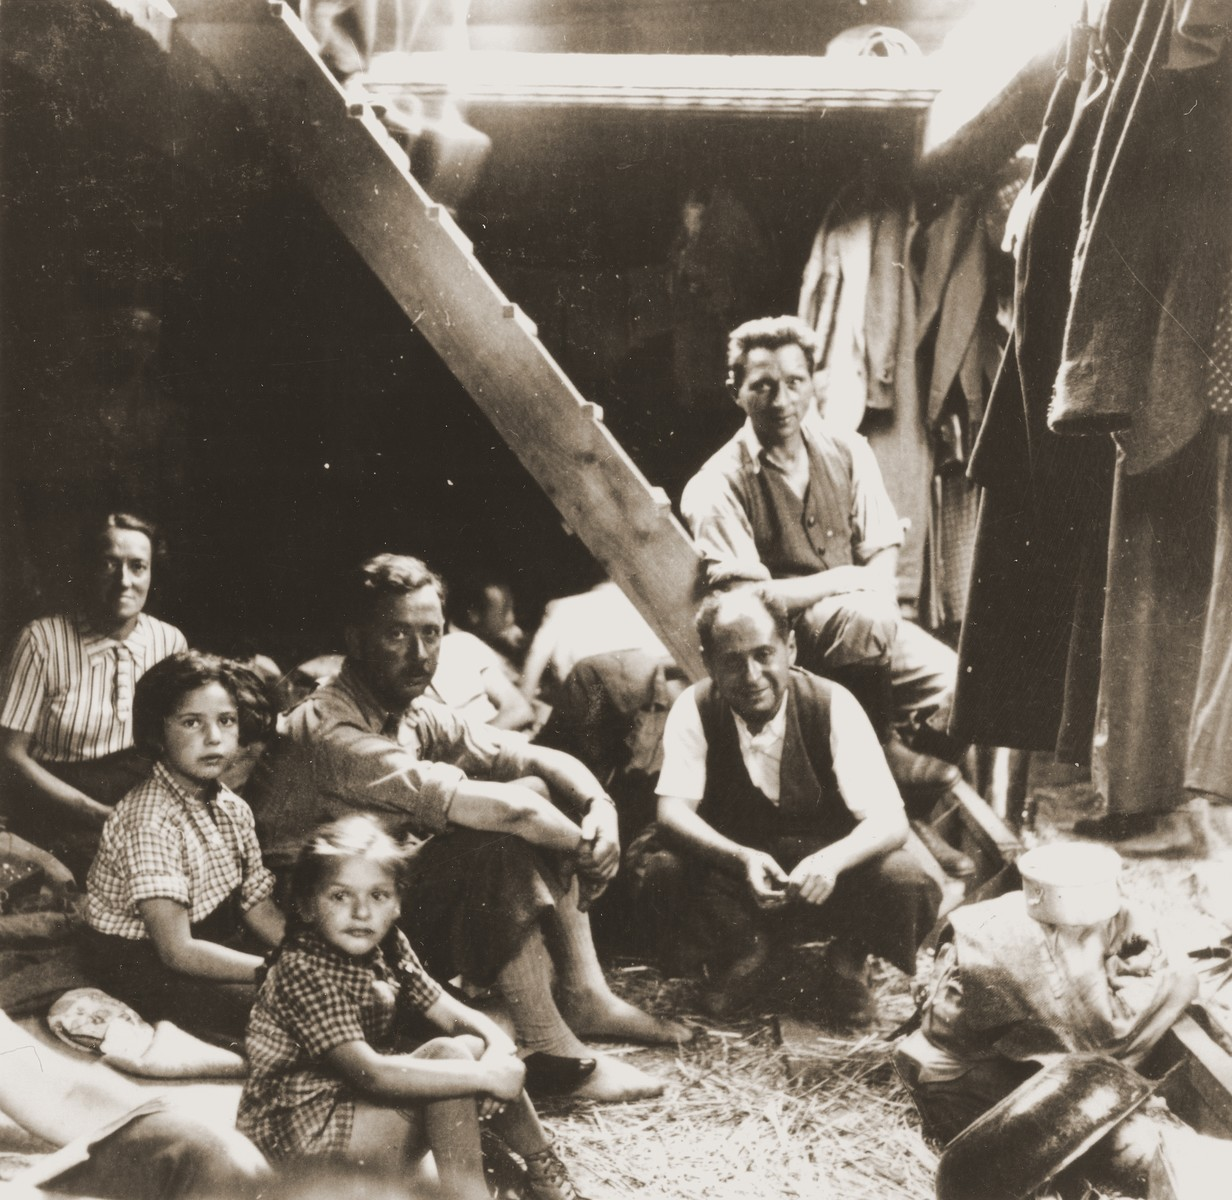 Jewish refugees from the Kladovo transport sit below deck during their journey from Kladovo to Sabac.